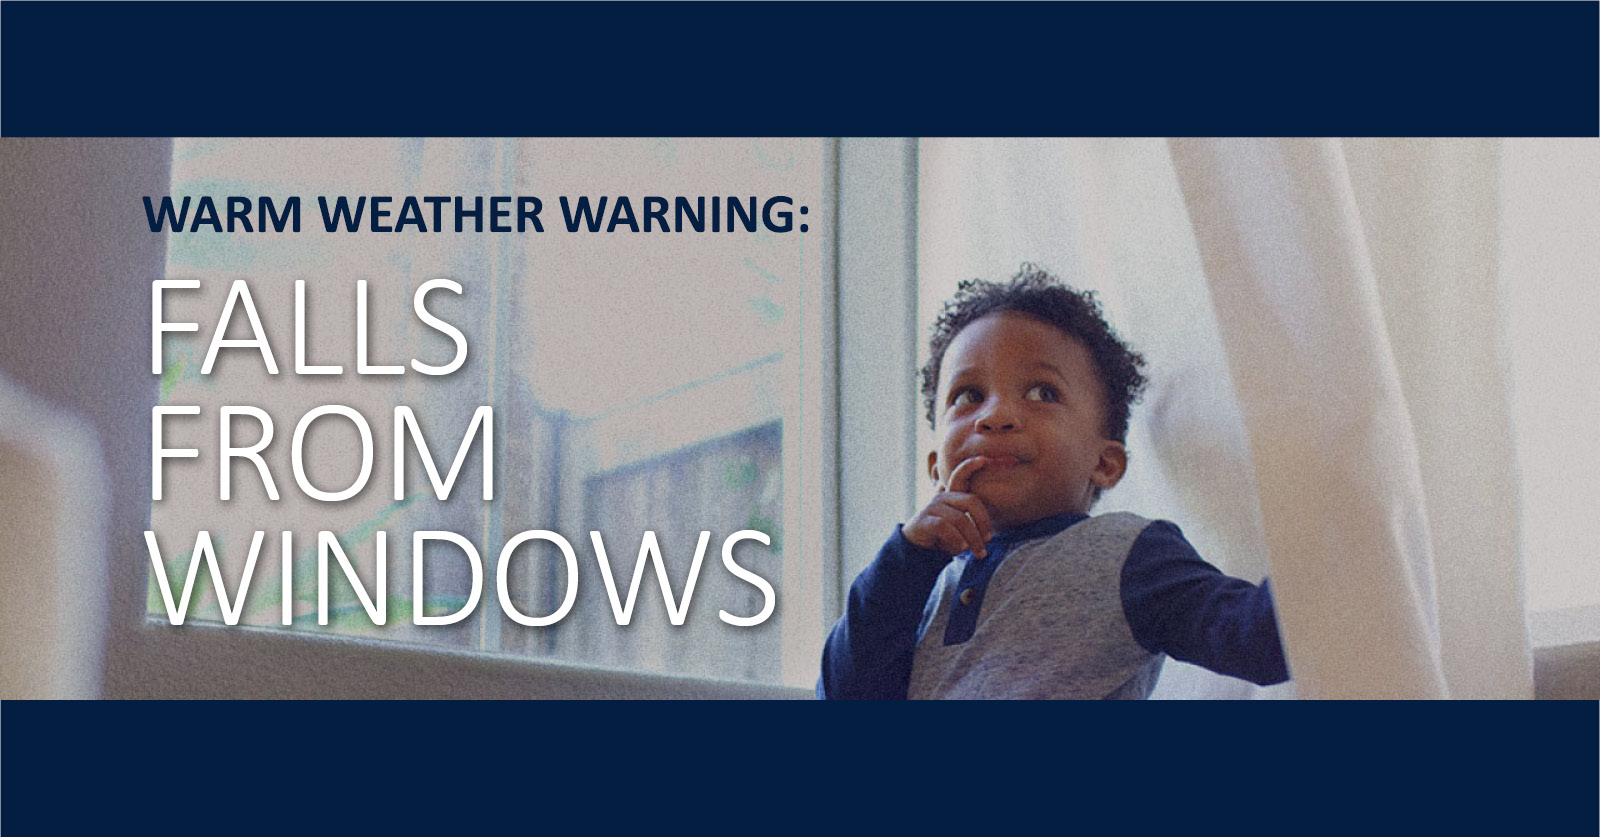 Warm Weather Warning – Be Careful of Falls from Windows